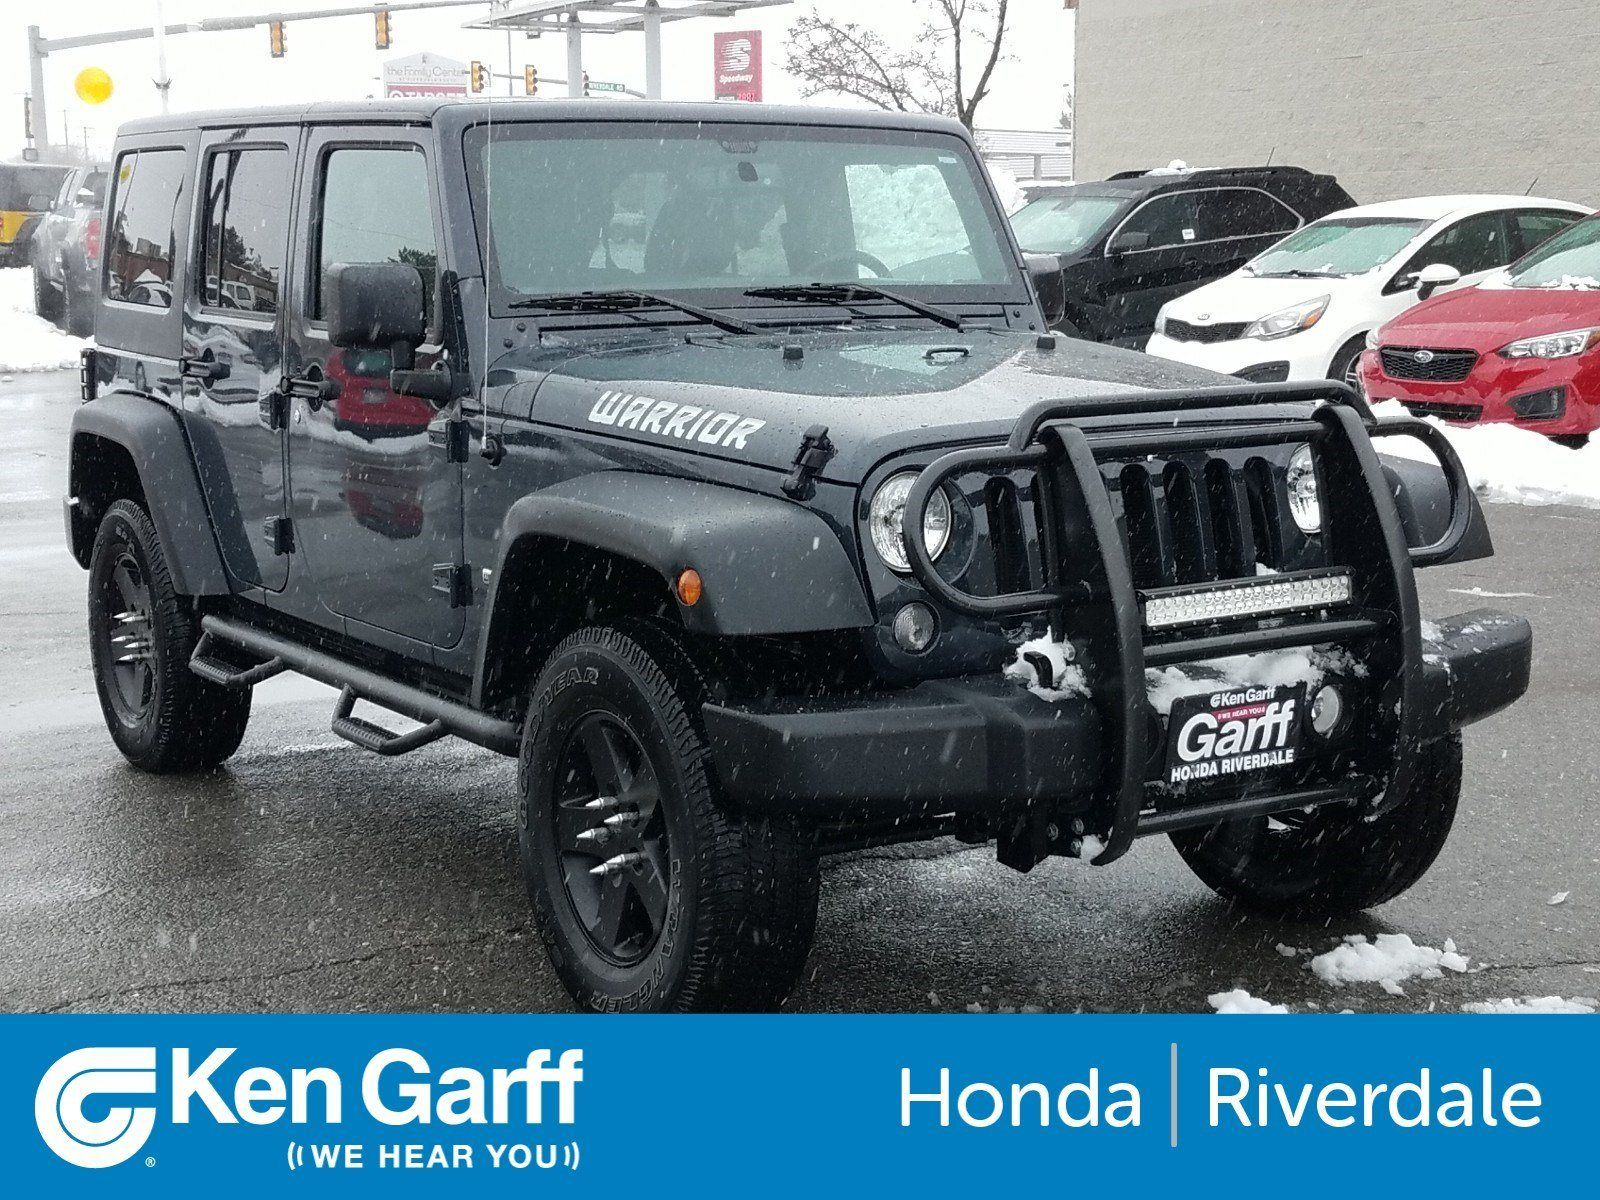 2020 Jeep Wrangler Diesel Specs And Review In 2020 Jeep Wrangler Diesel 2017 Jeep Wrangler Unlimited Jeep Wrangler Unlimited Sahara